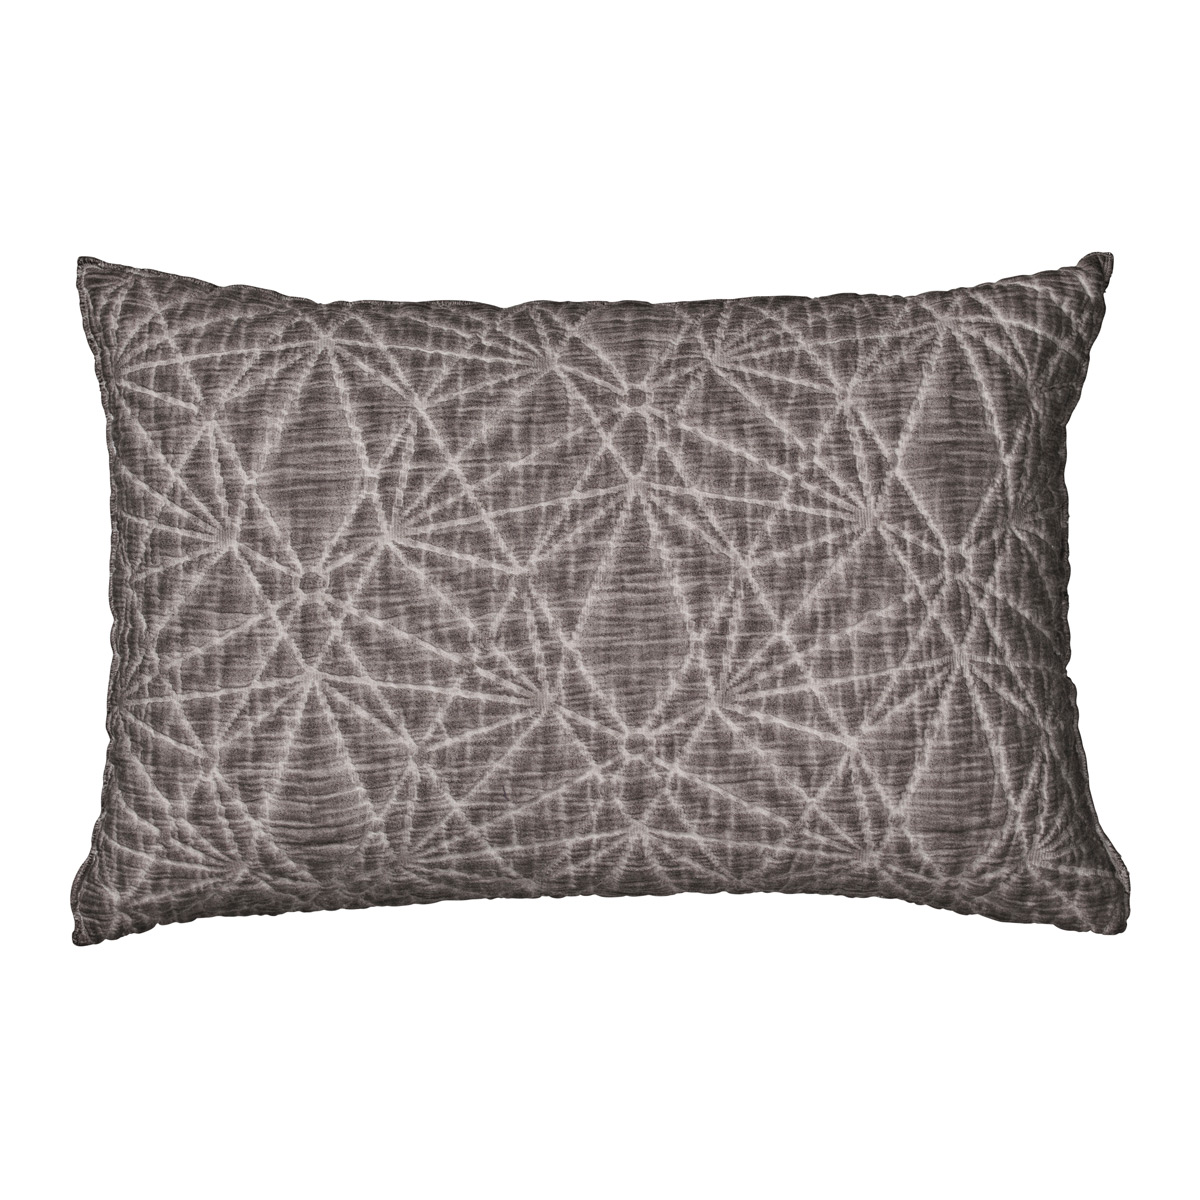 50030010-cushion-cover-lea